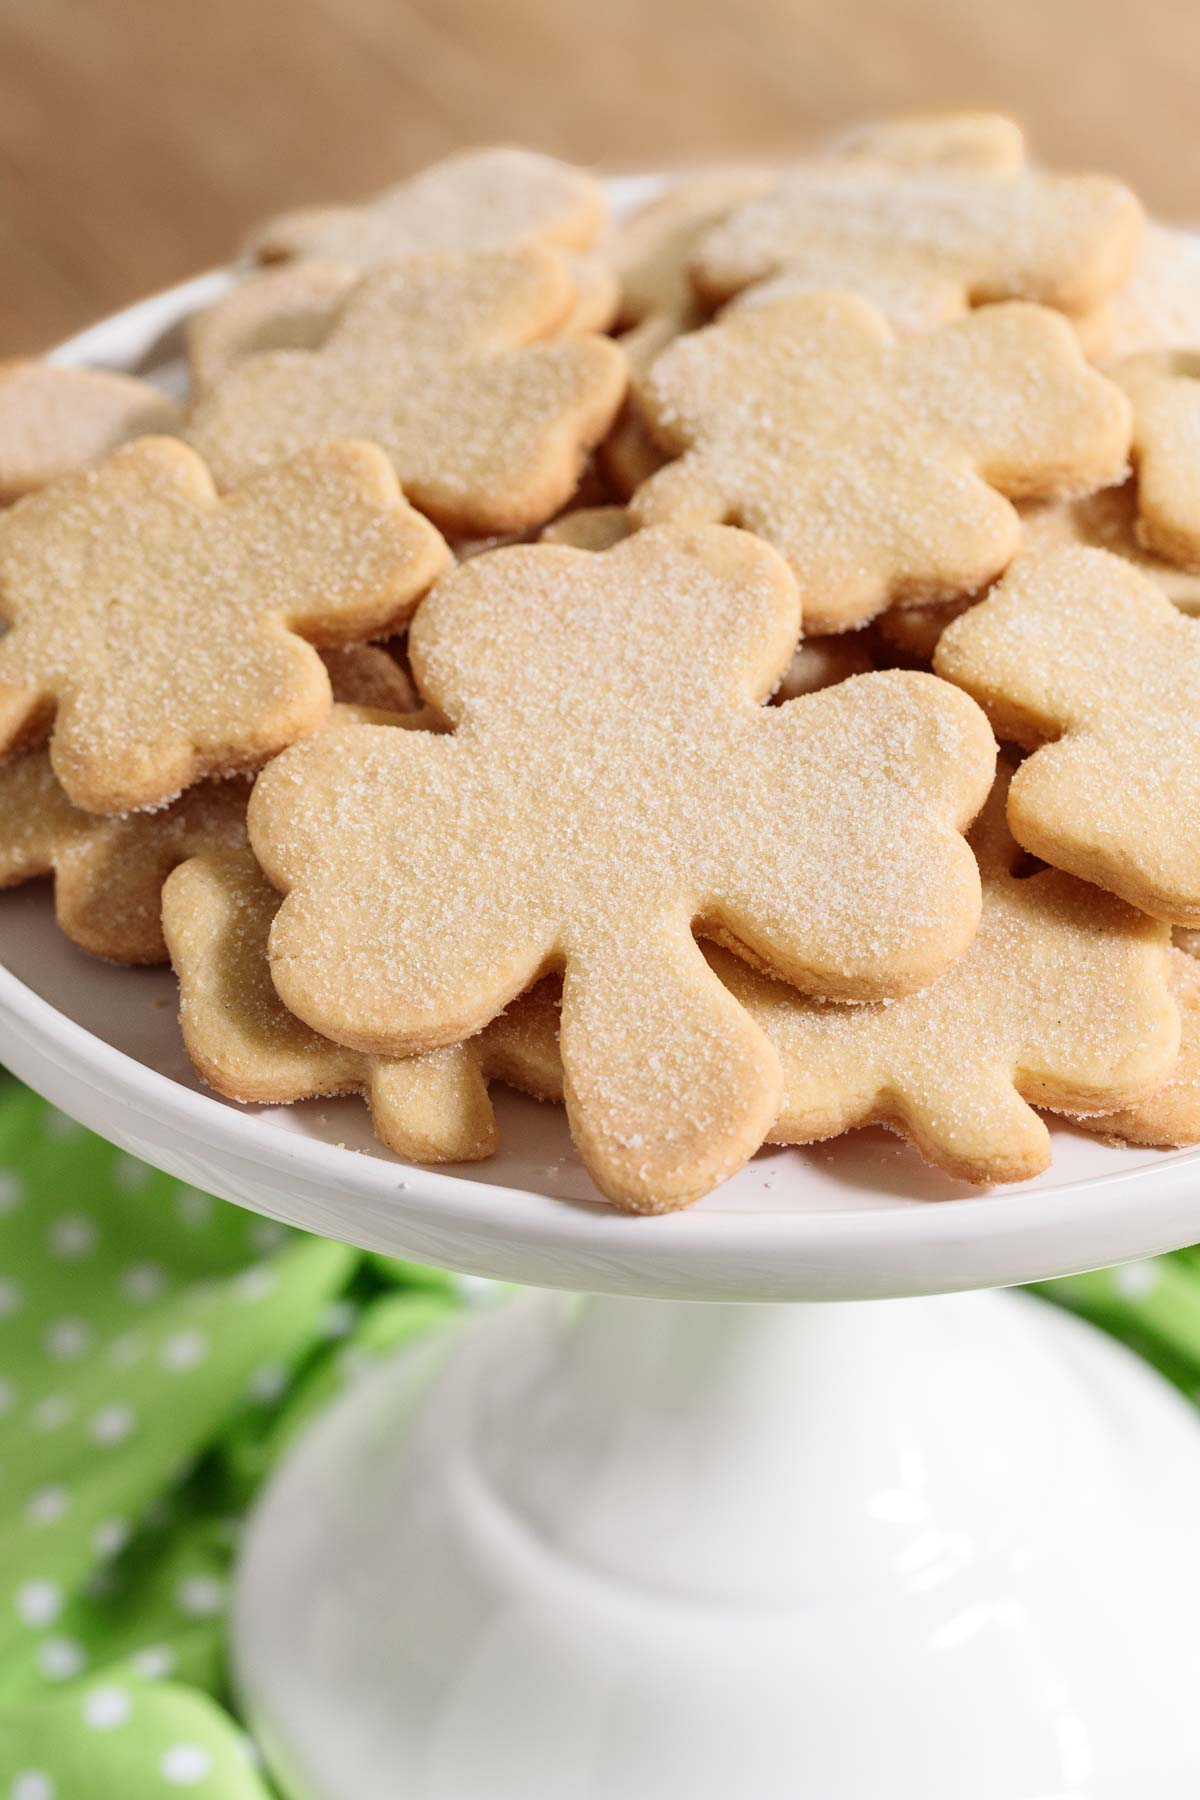 Easy Irish Shortbread Cookies The Cafe Sucre Farine